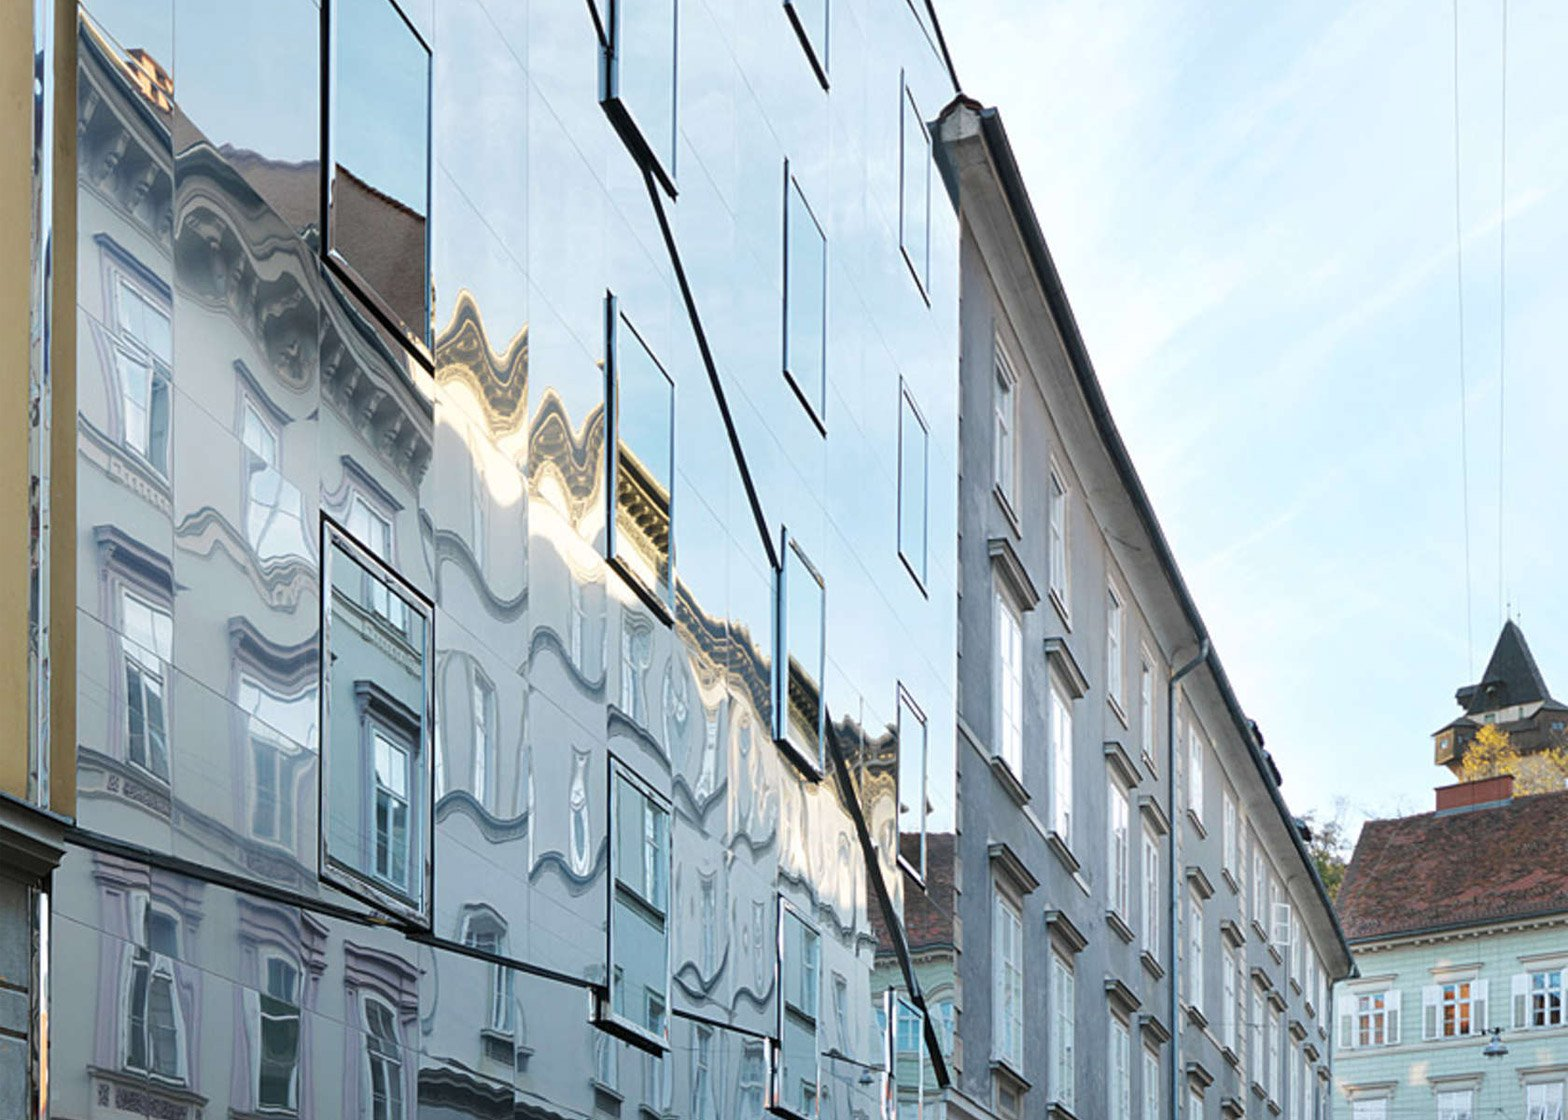 This Stainless Steel Building Reflects The Historic